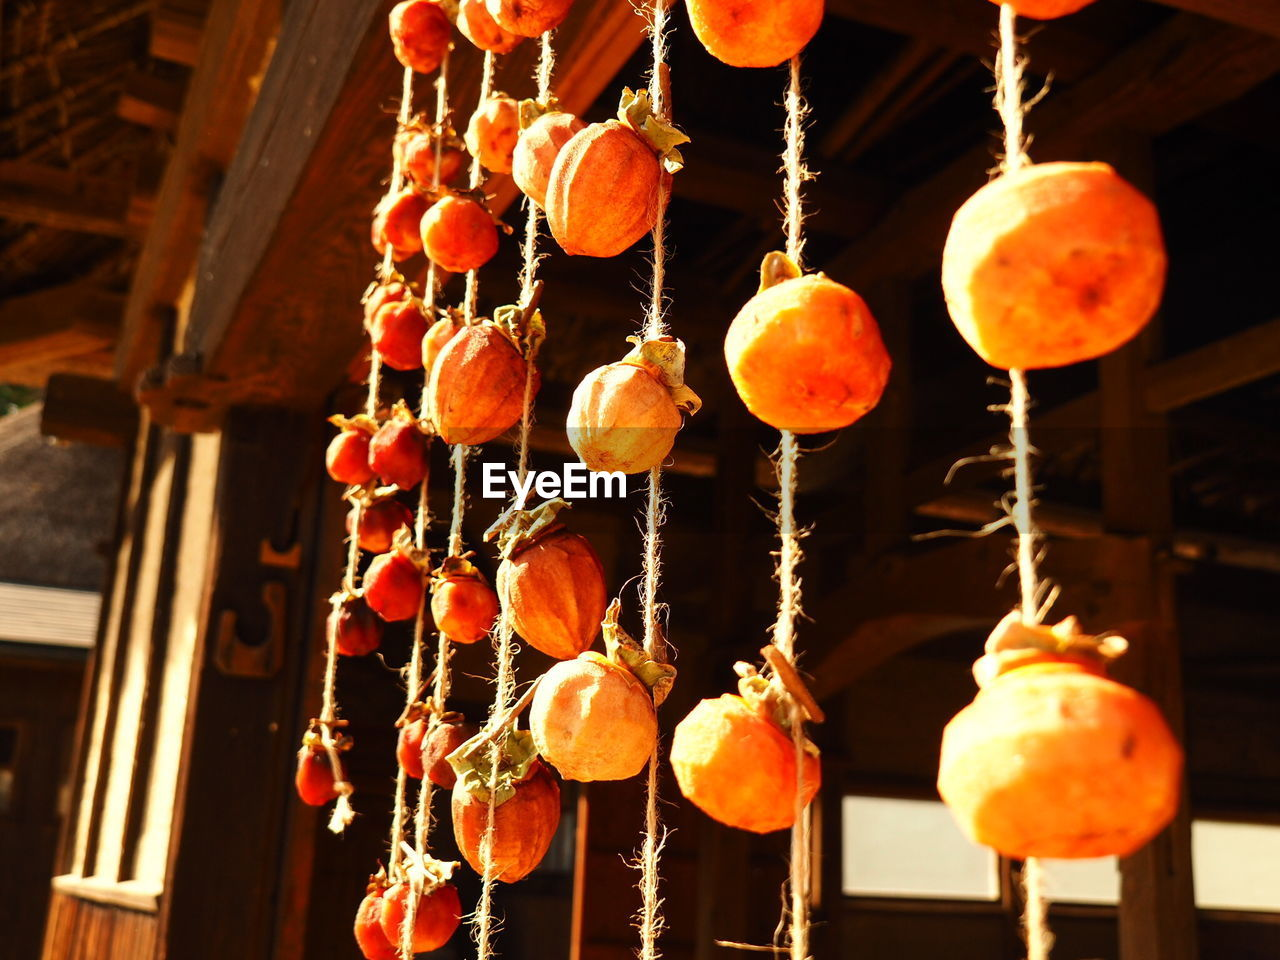 Persimmons Tied In Threads Hanging At Entrance Of Japanese Temple